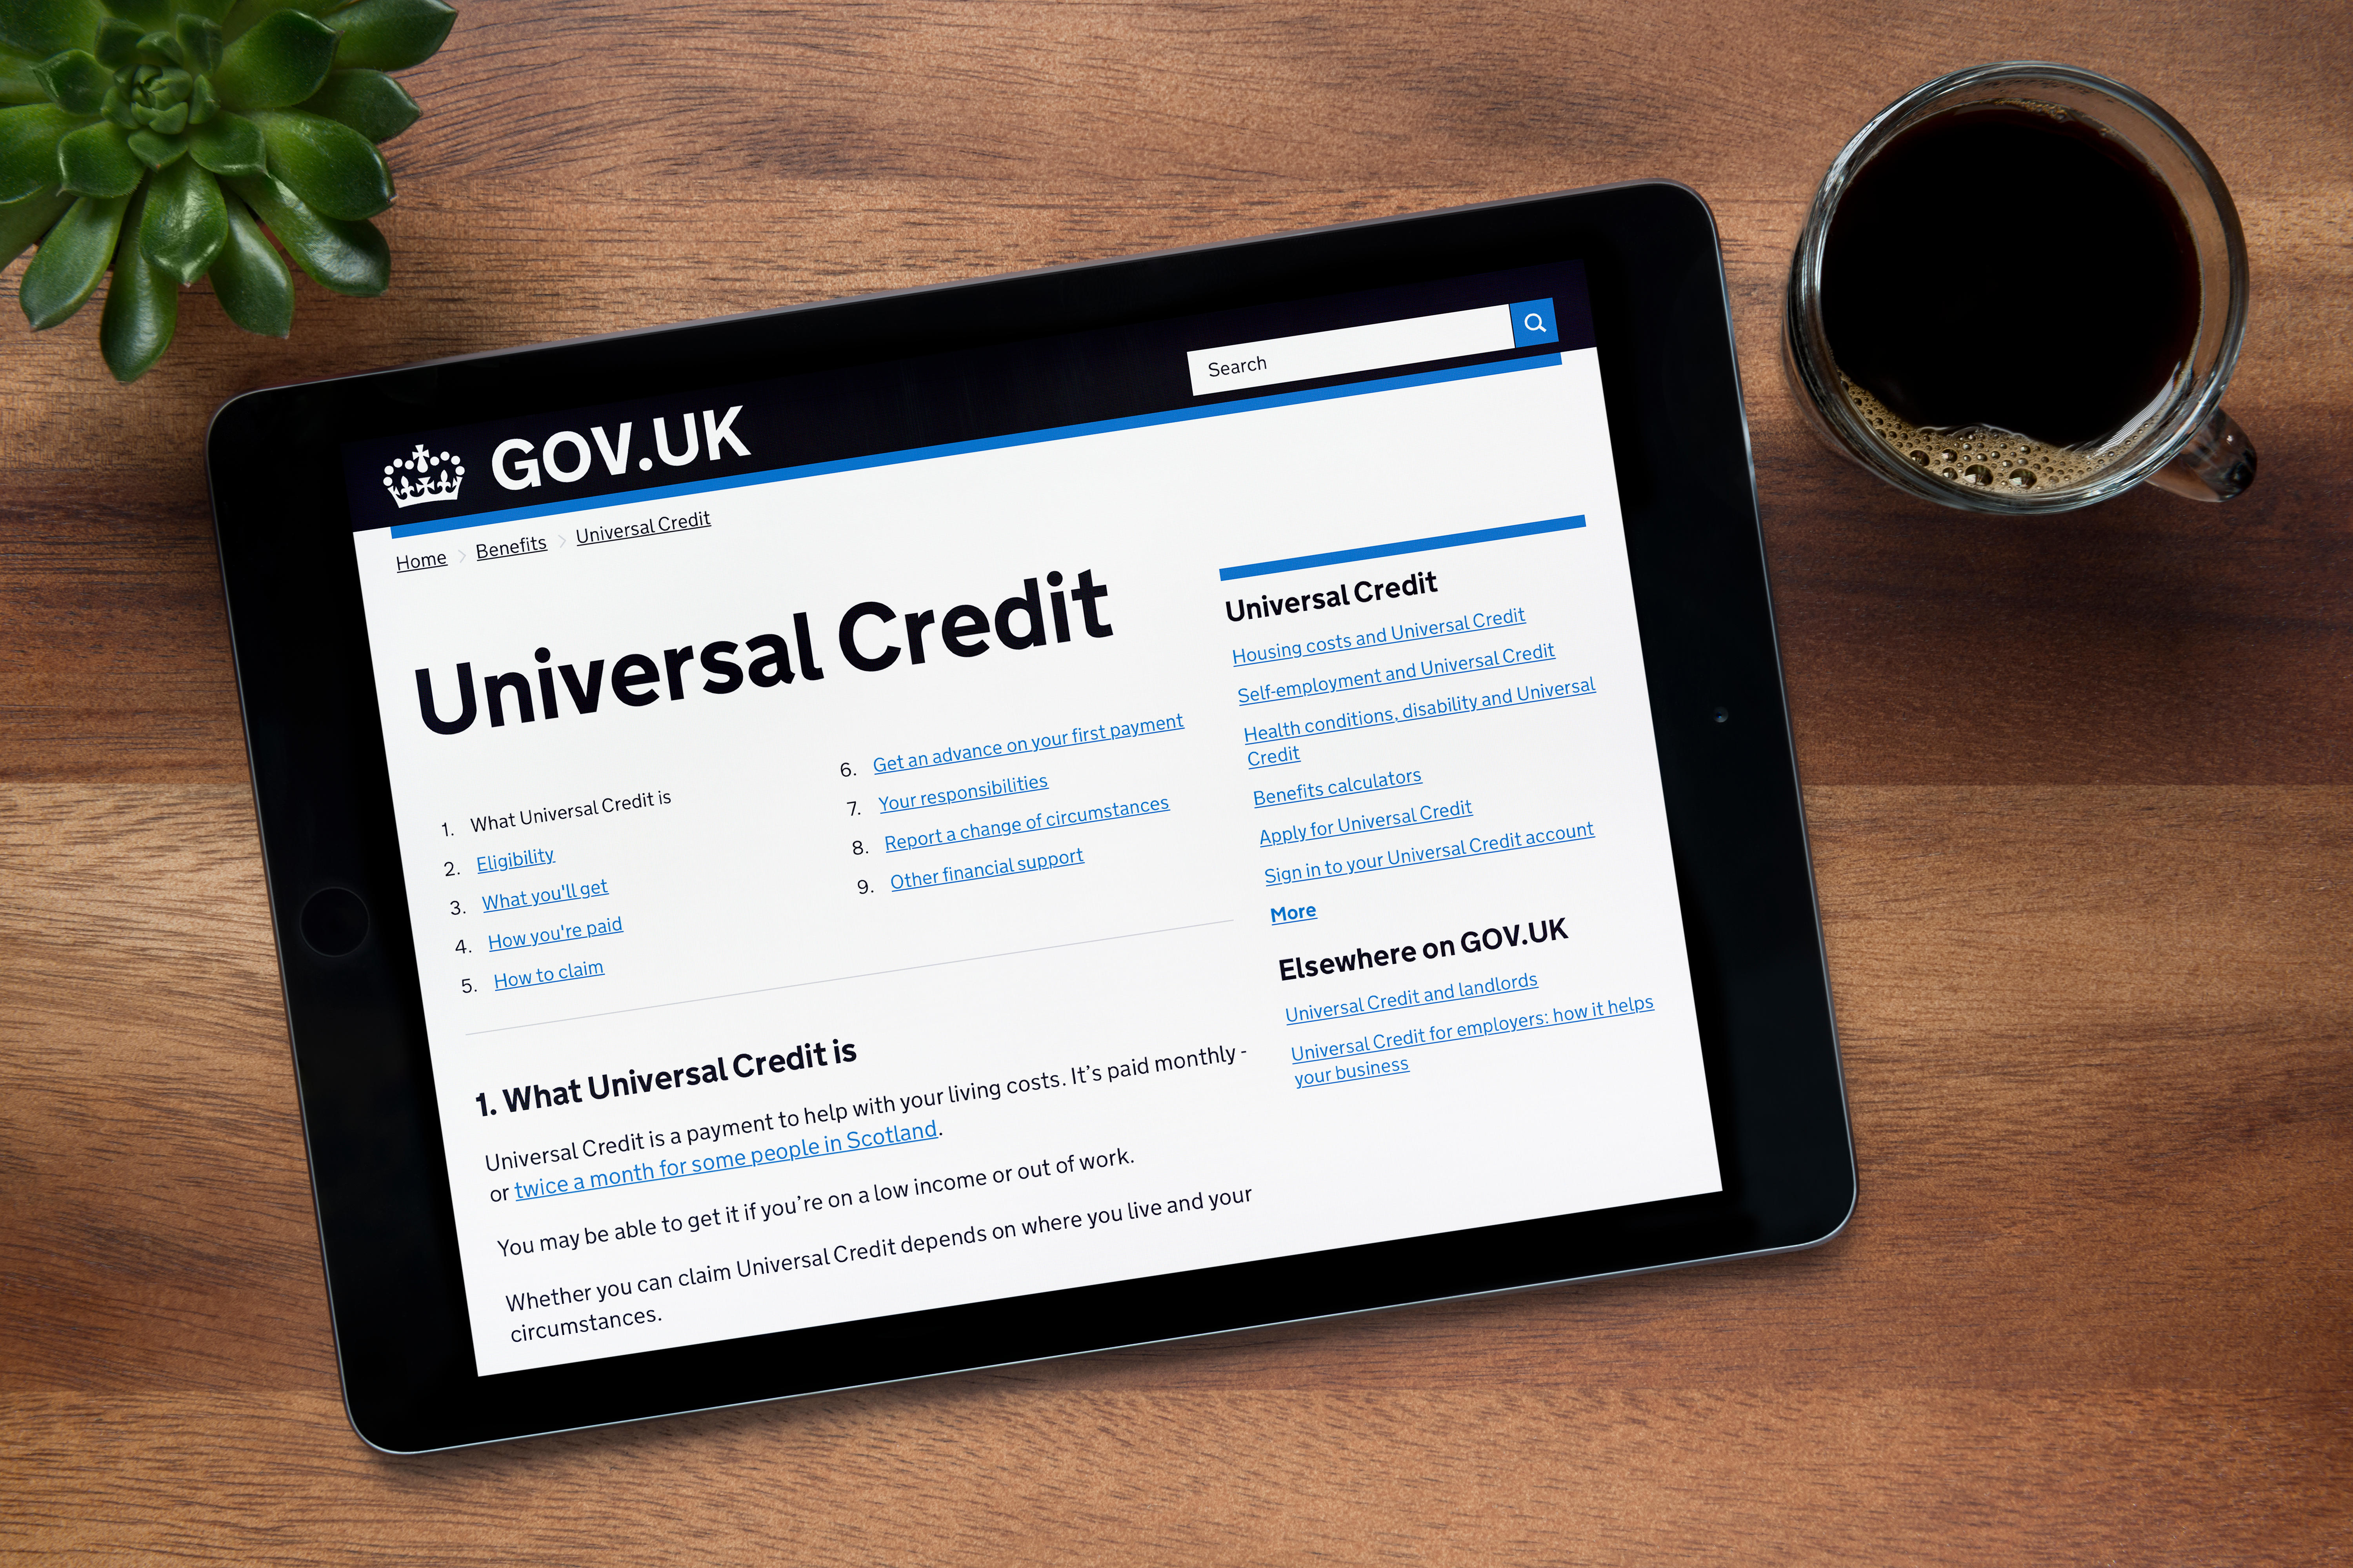 Without a work capability assessment Sidra Kauser could not make her claim for Universal Credit.